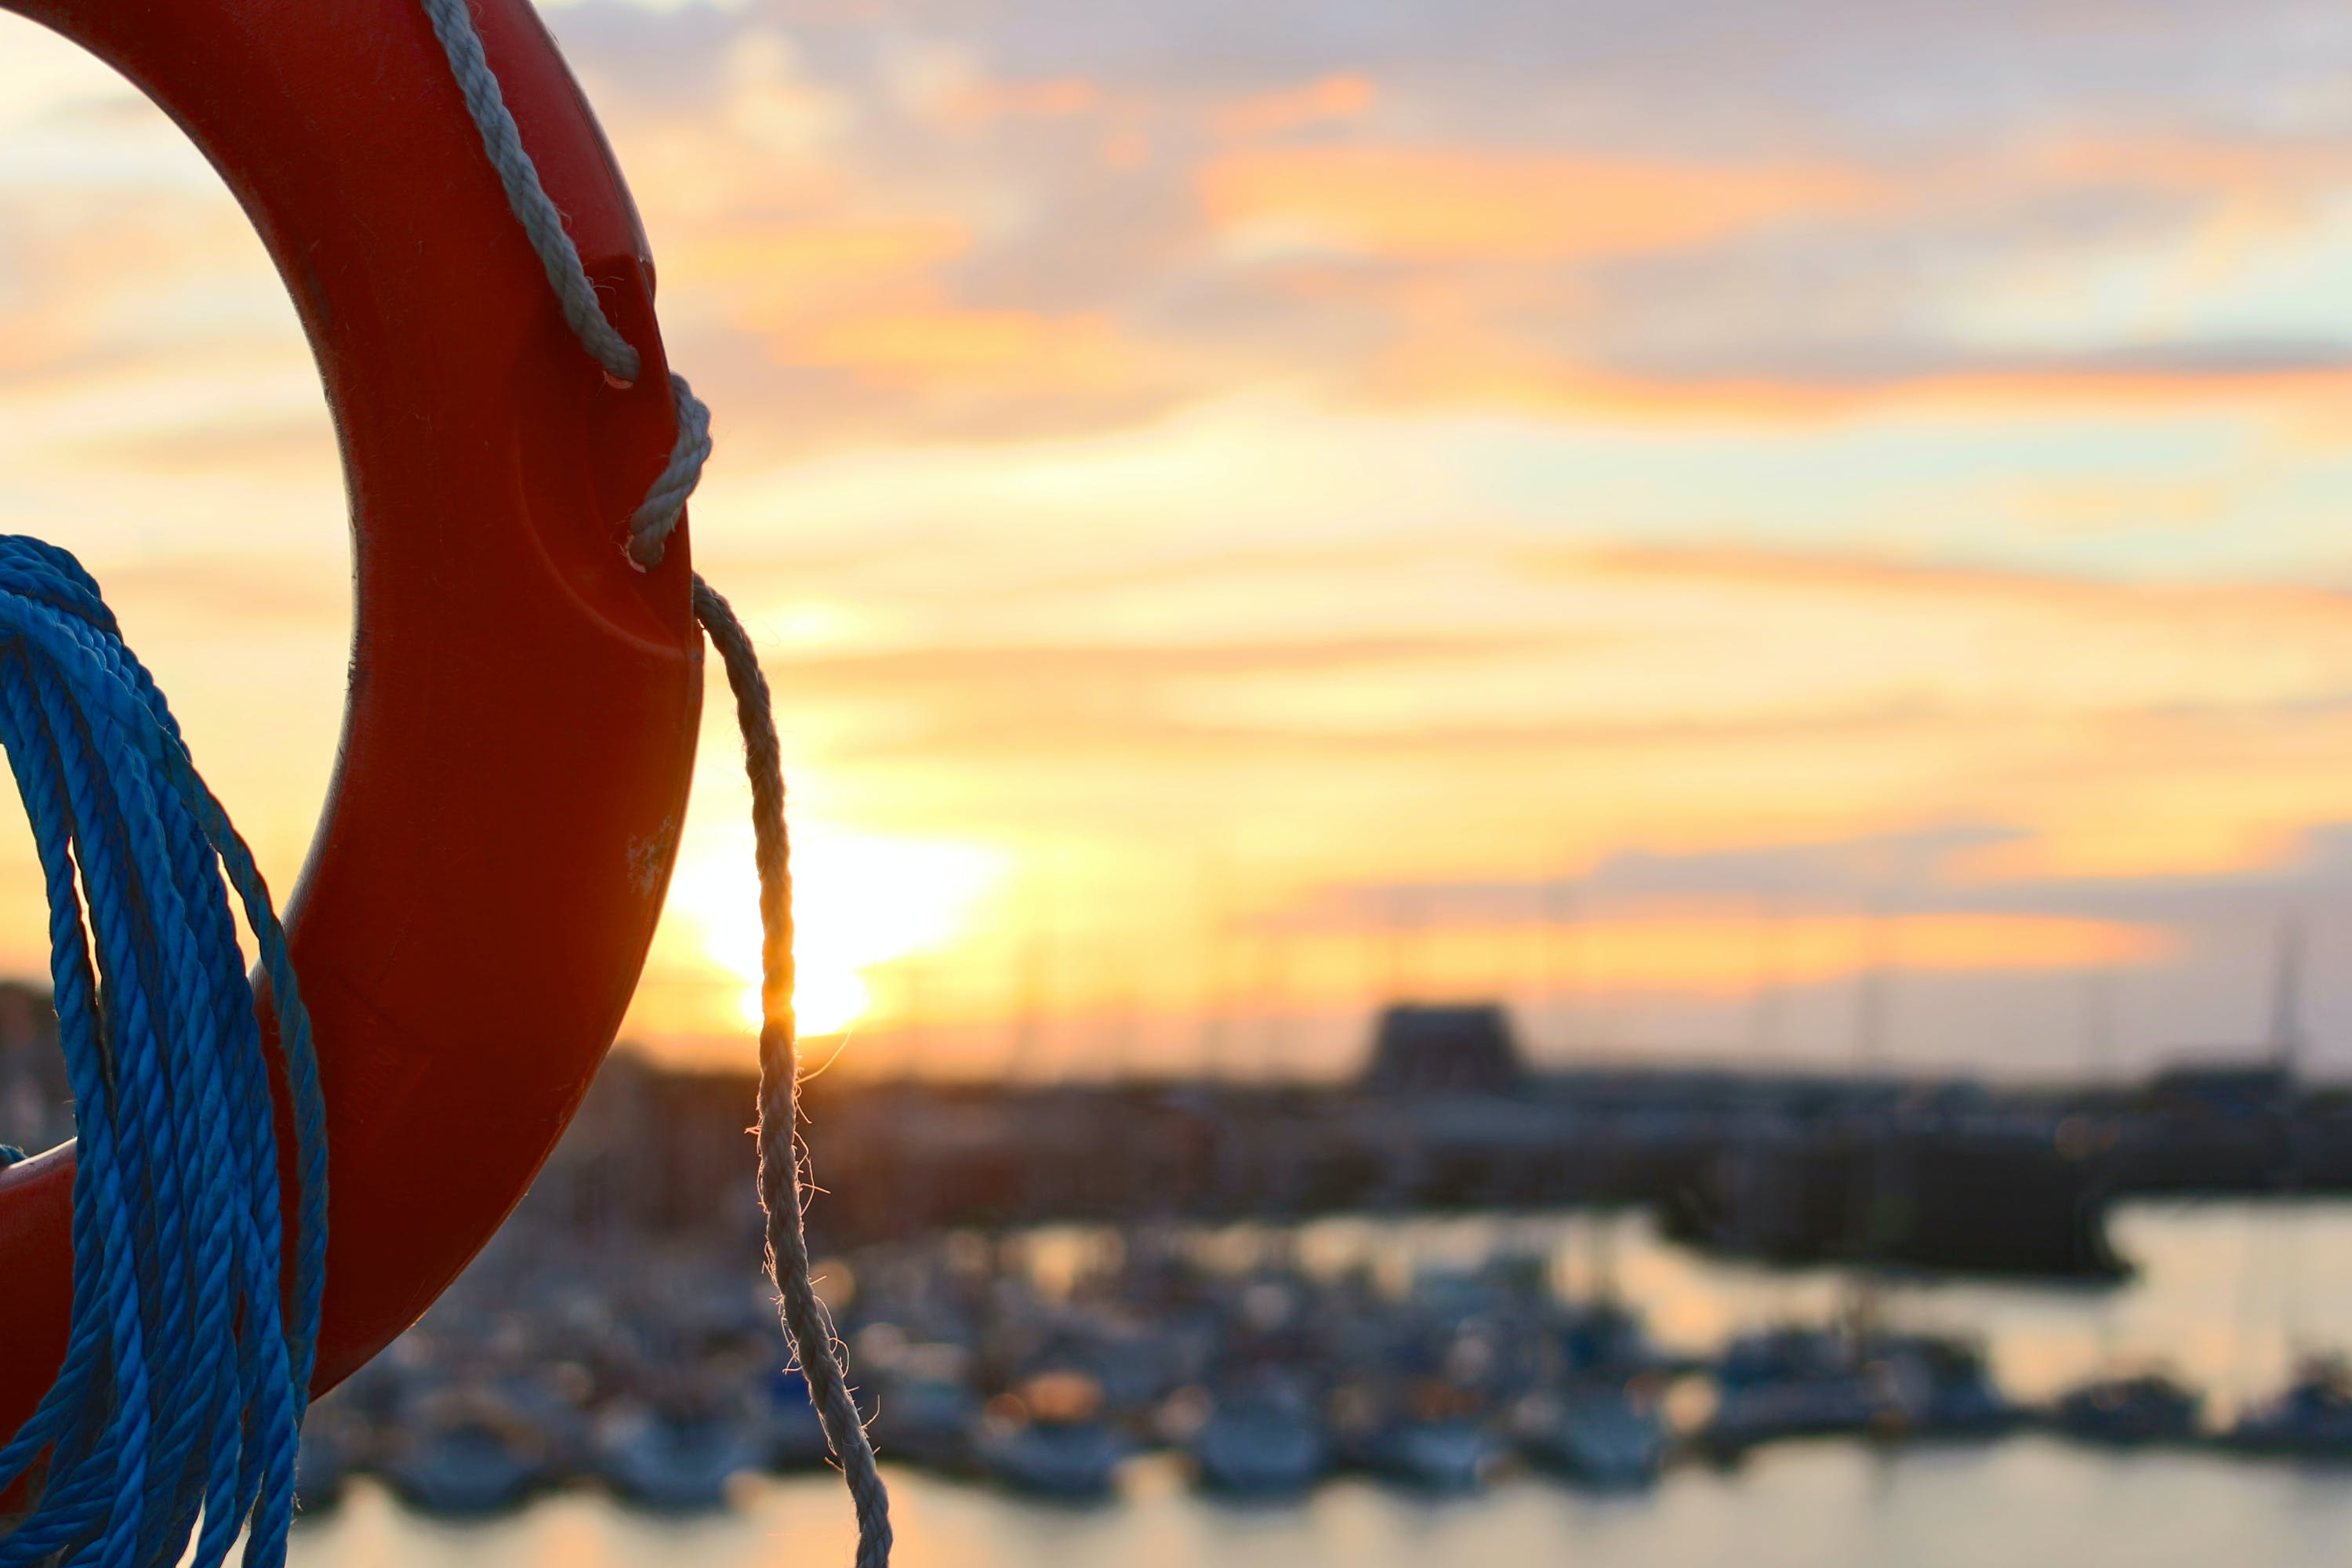 Red Life Ring With Rope during Golden Hour